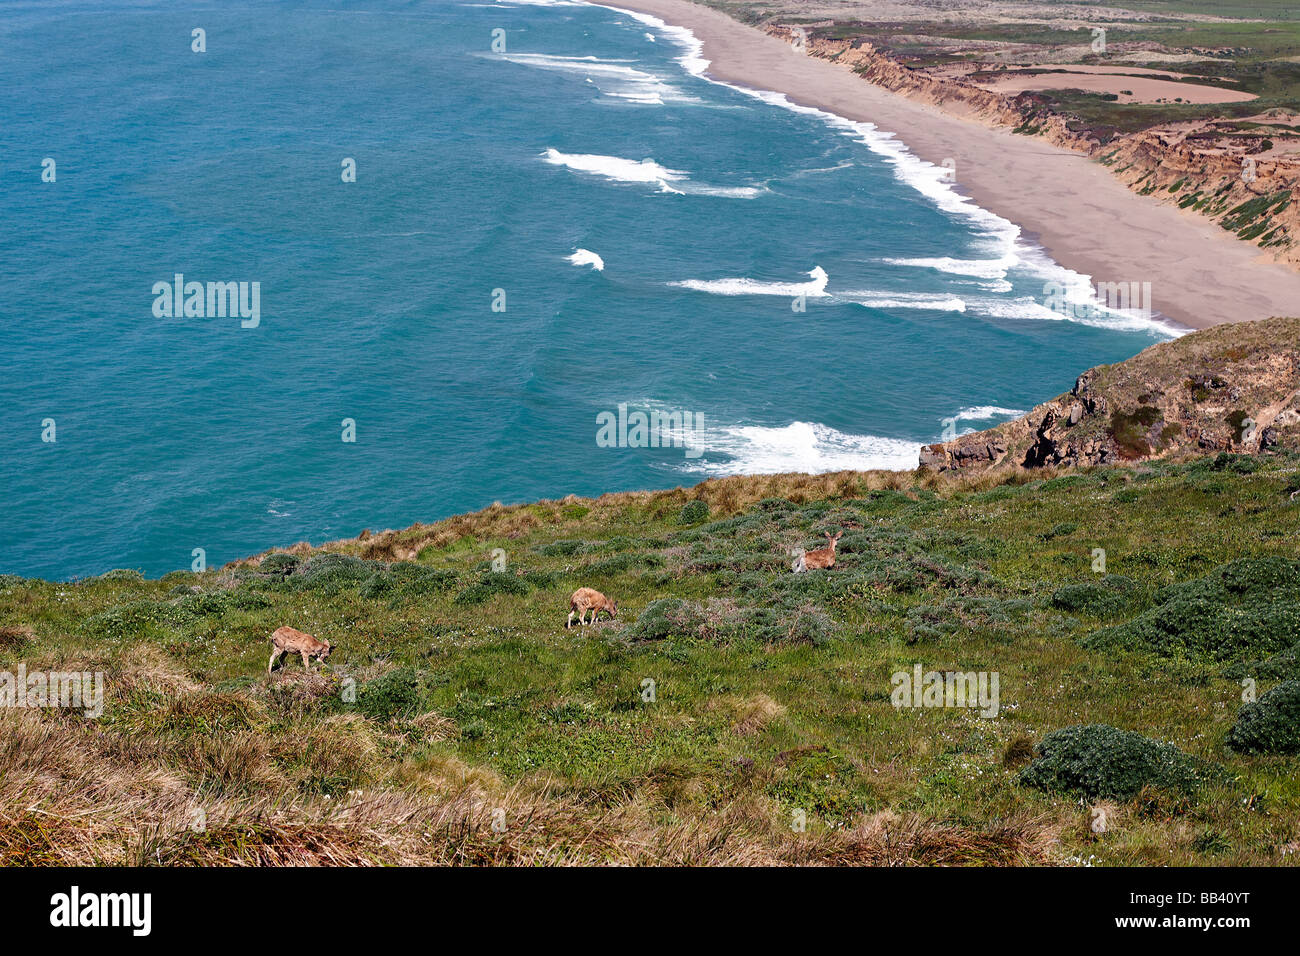 Tule Elk are Grazing on the Shore Point Reyes National Seashore California - Stock Image